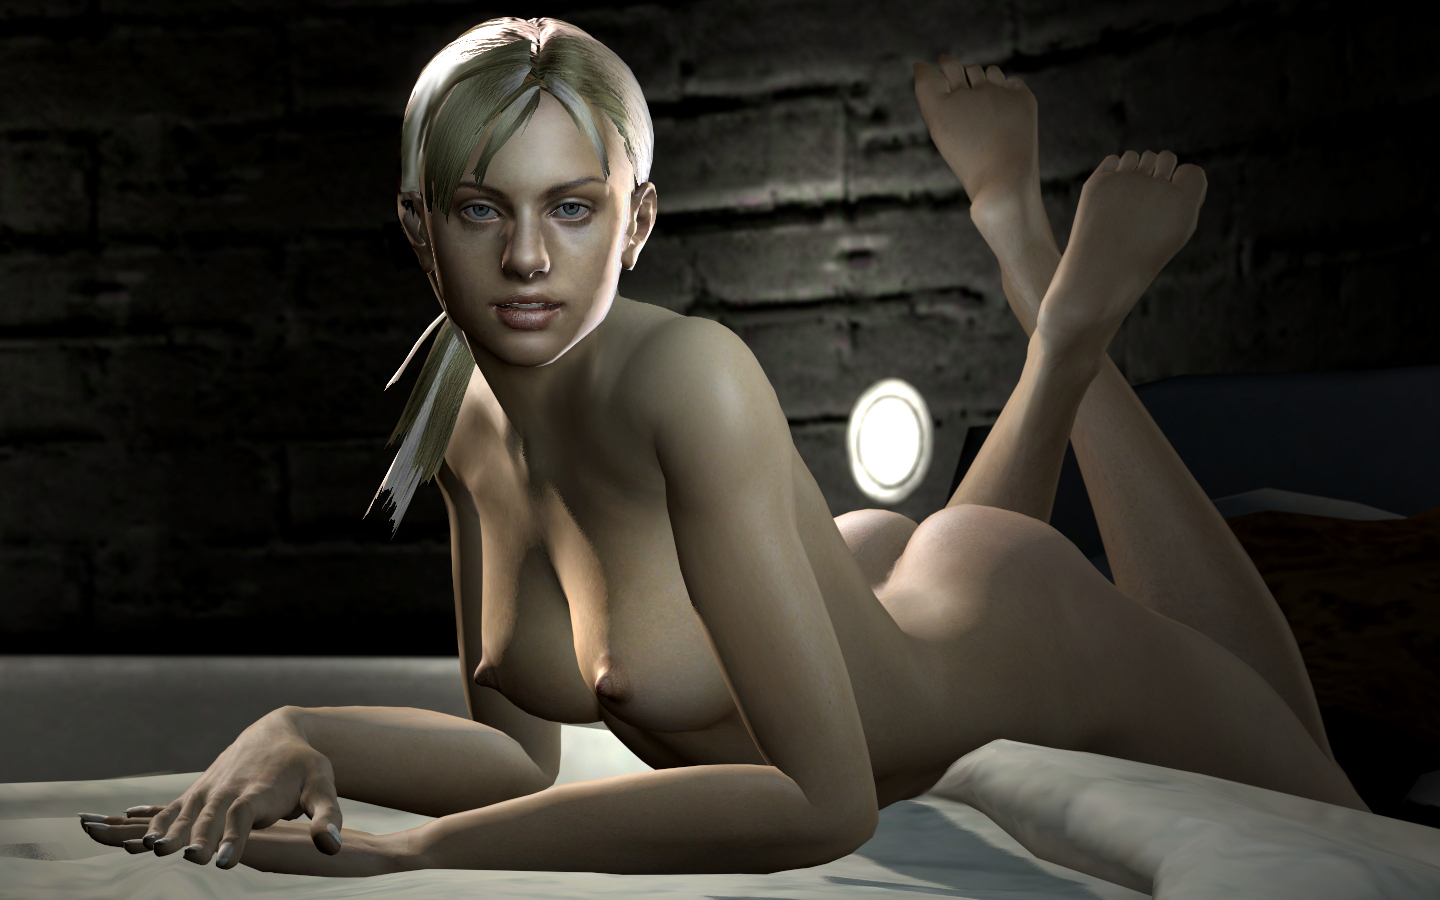 Nude pic of girls from resident evil  xxx gallery